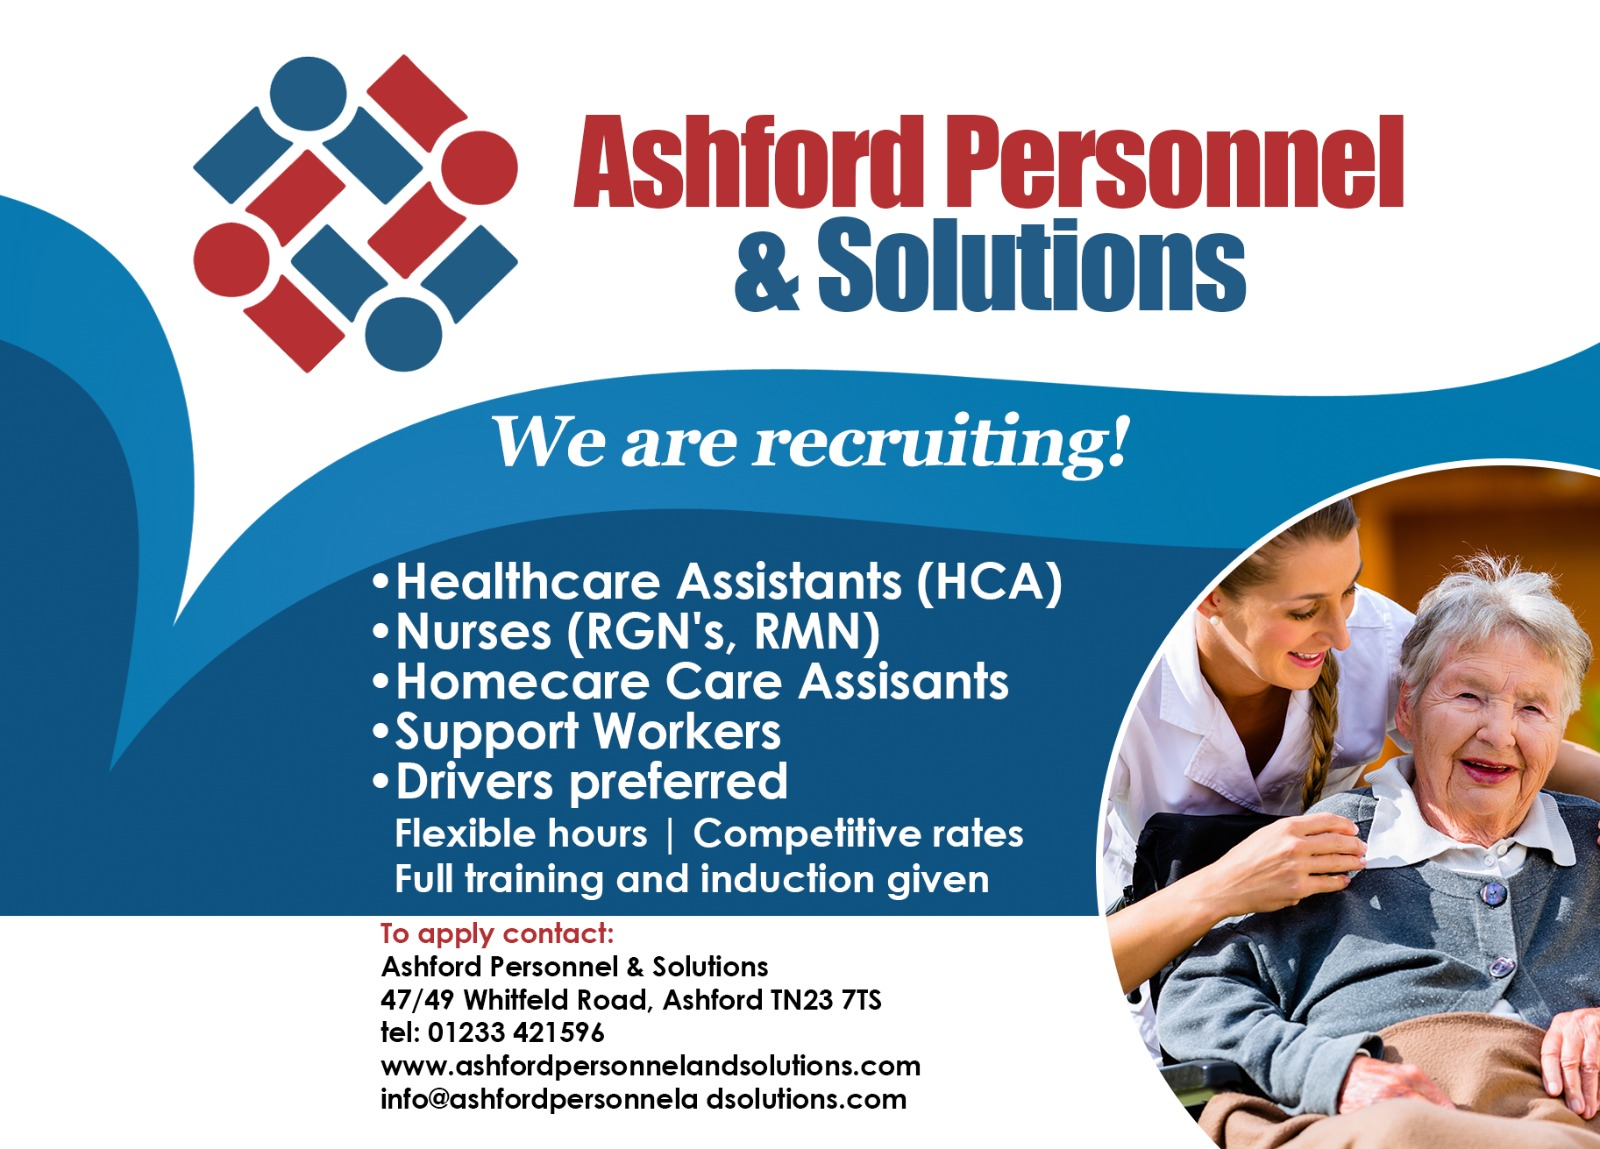 AshfORD Personnel and Solutions Bronchures